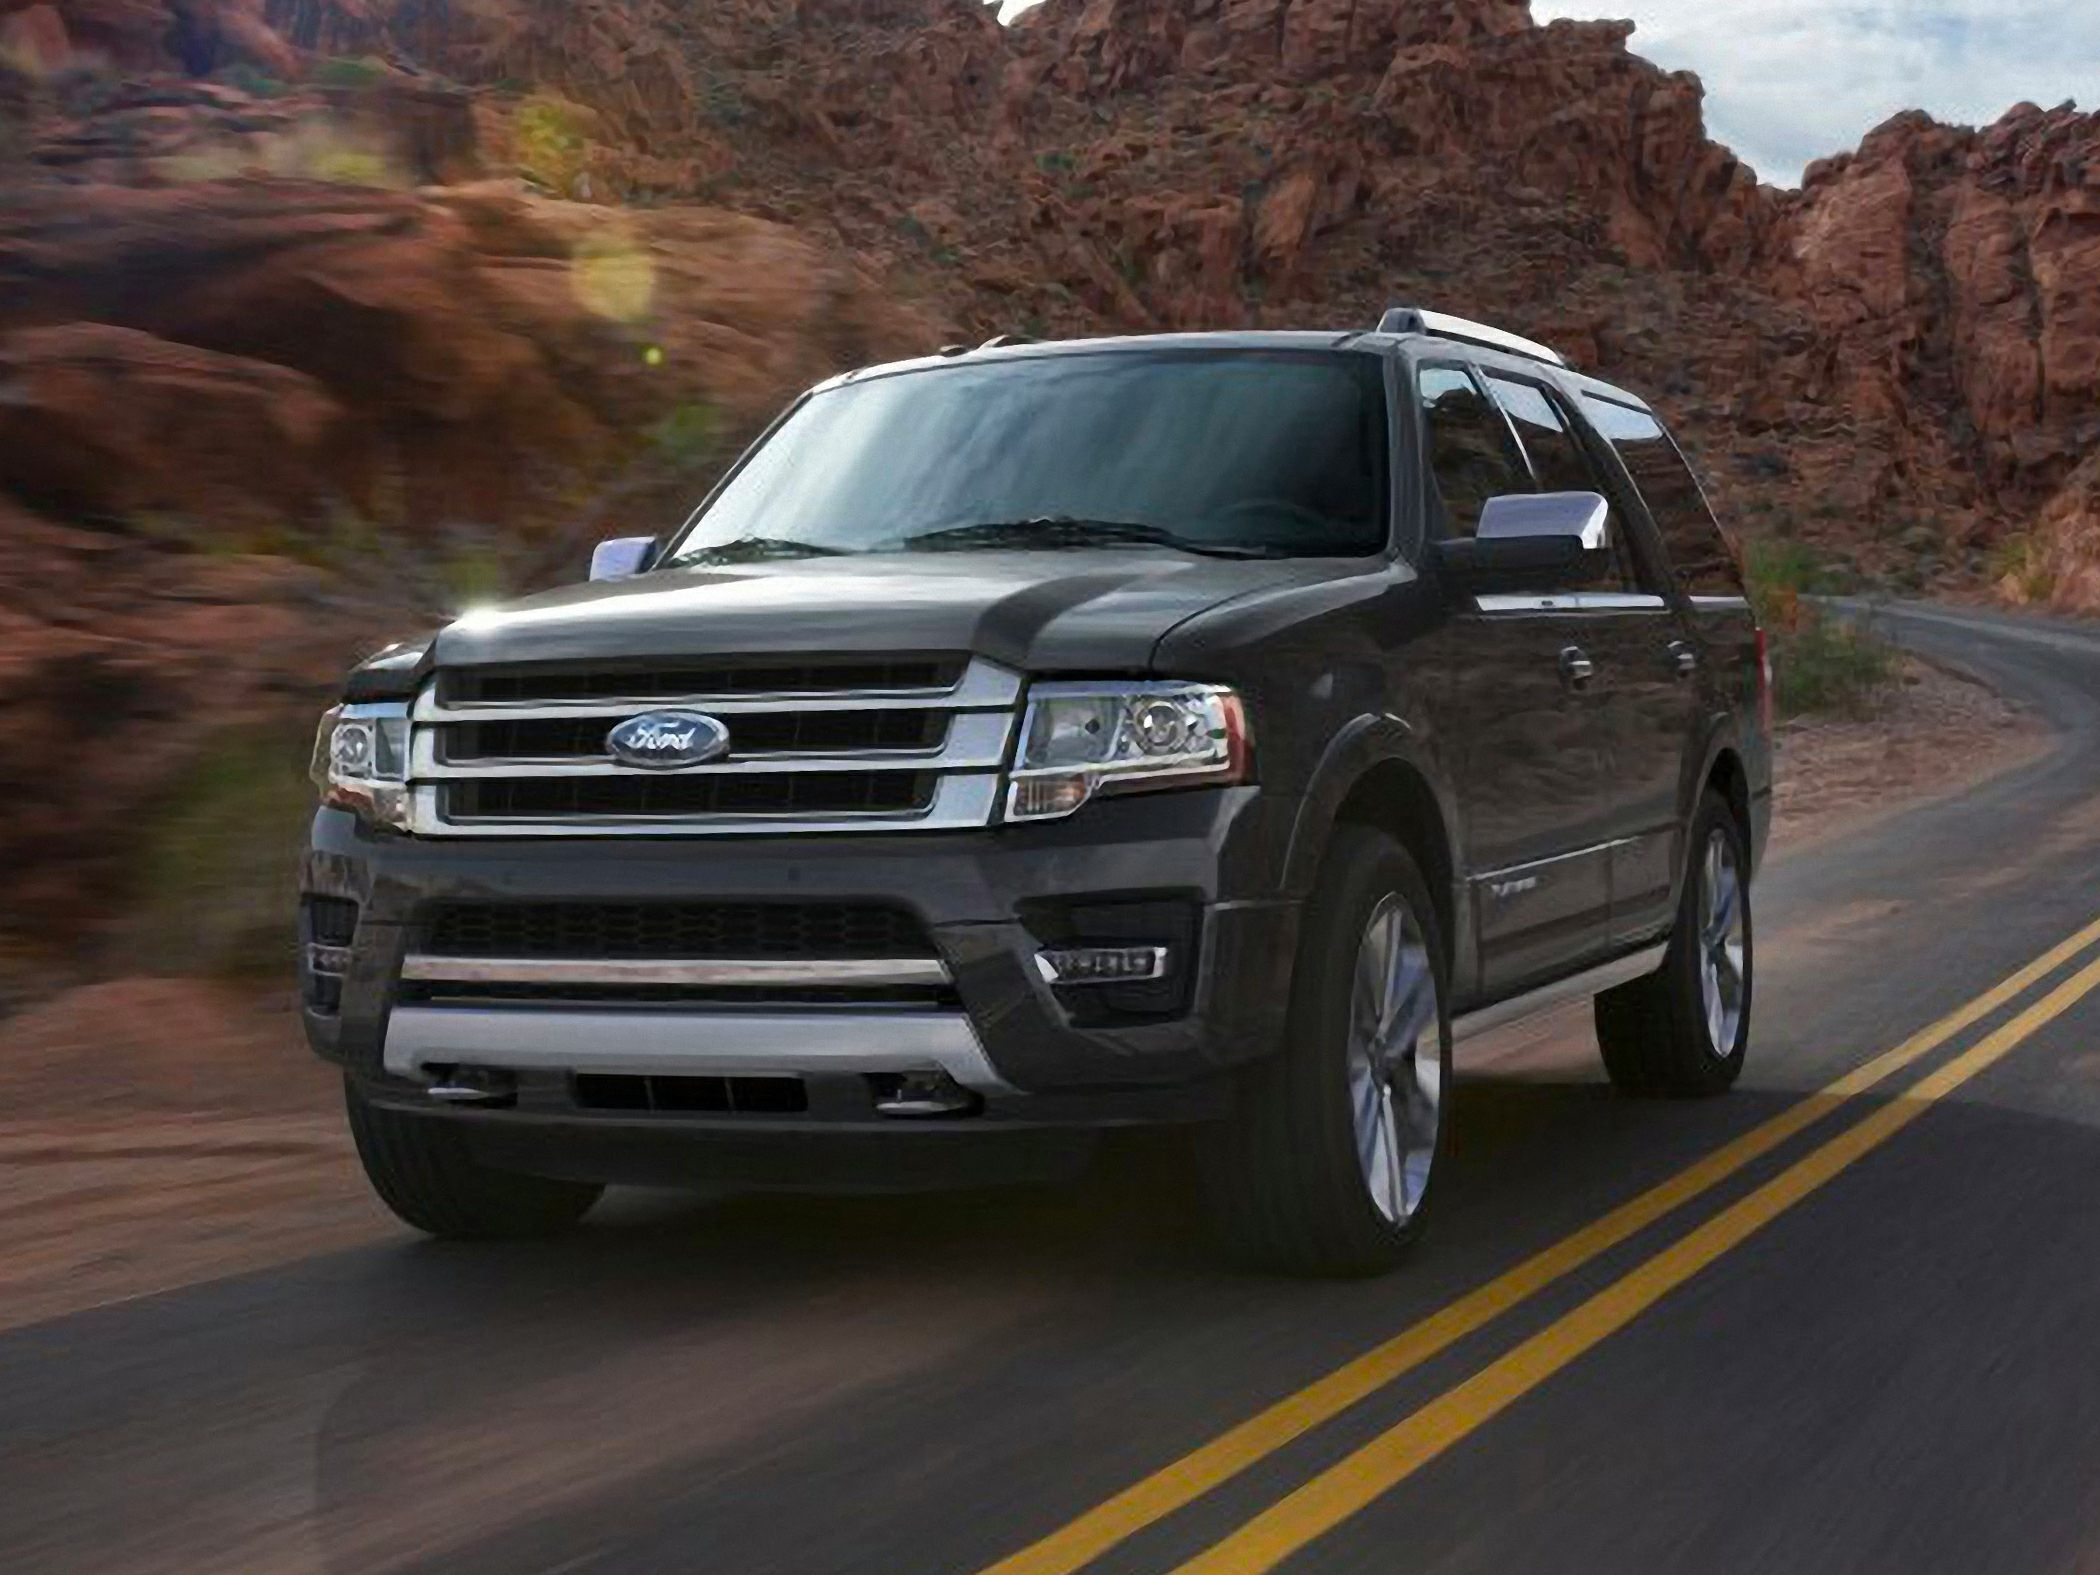 2015 Ford Expedition Magnetic Limited Ford Expedition New Ford